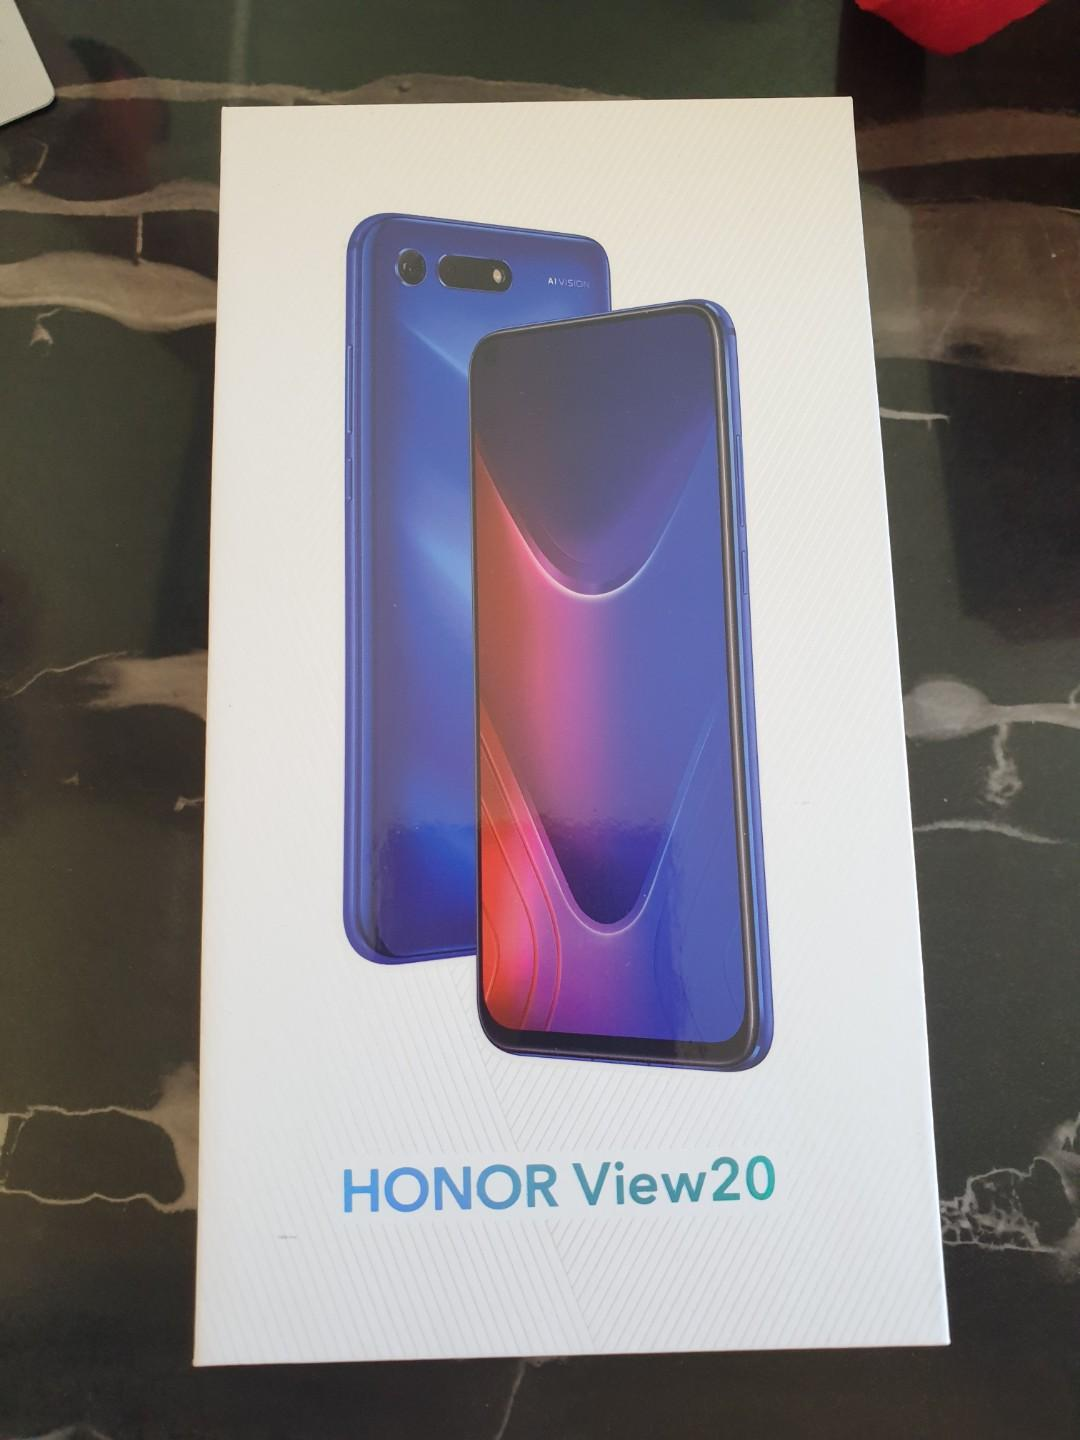 Huawei Honor View 20 - 128GB - Sapphire Blue, Mobile Phones